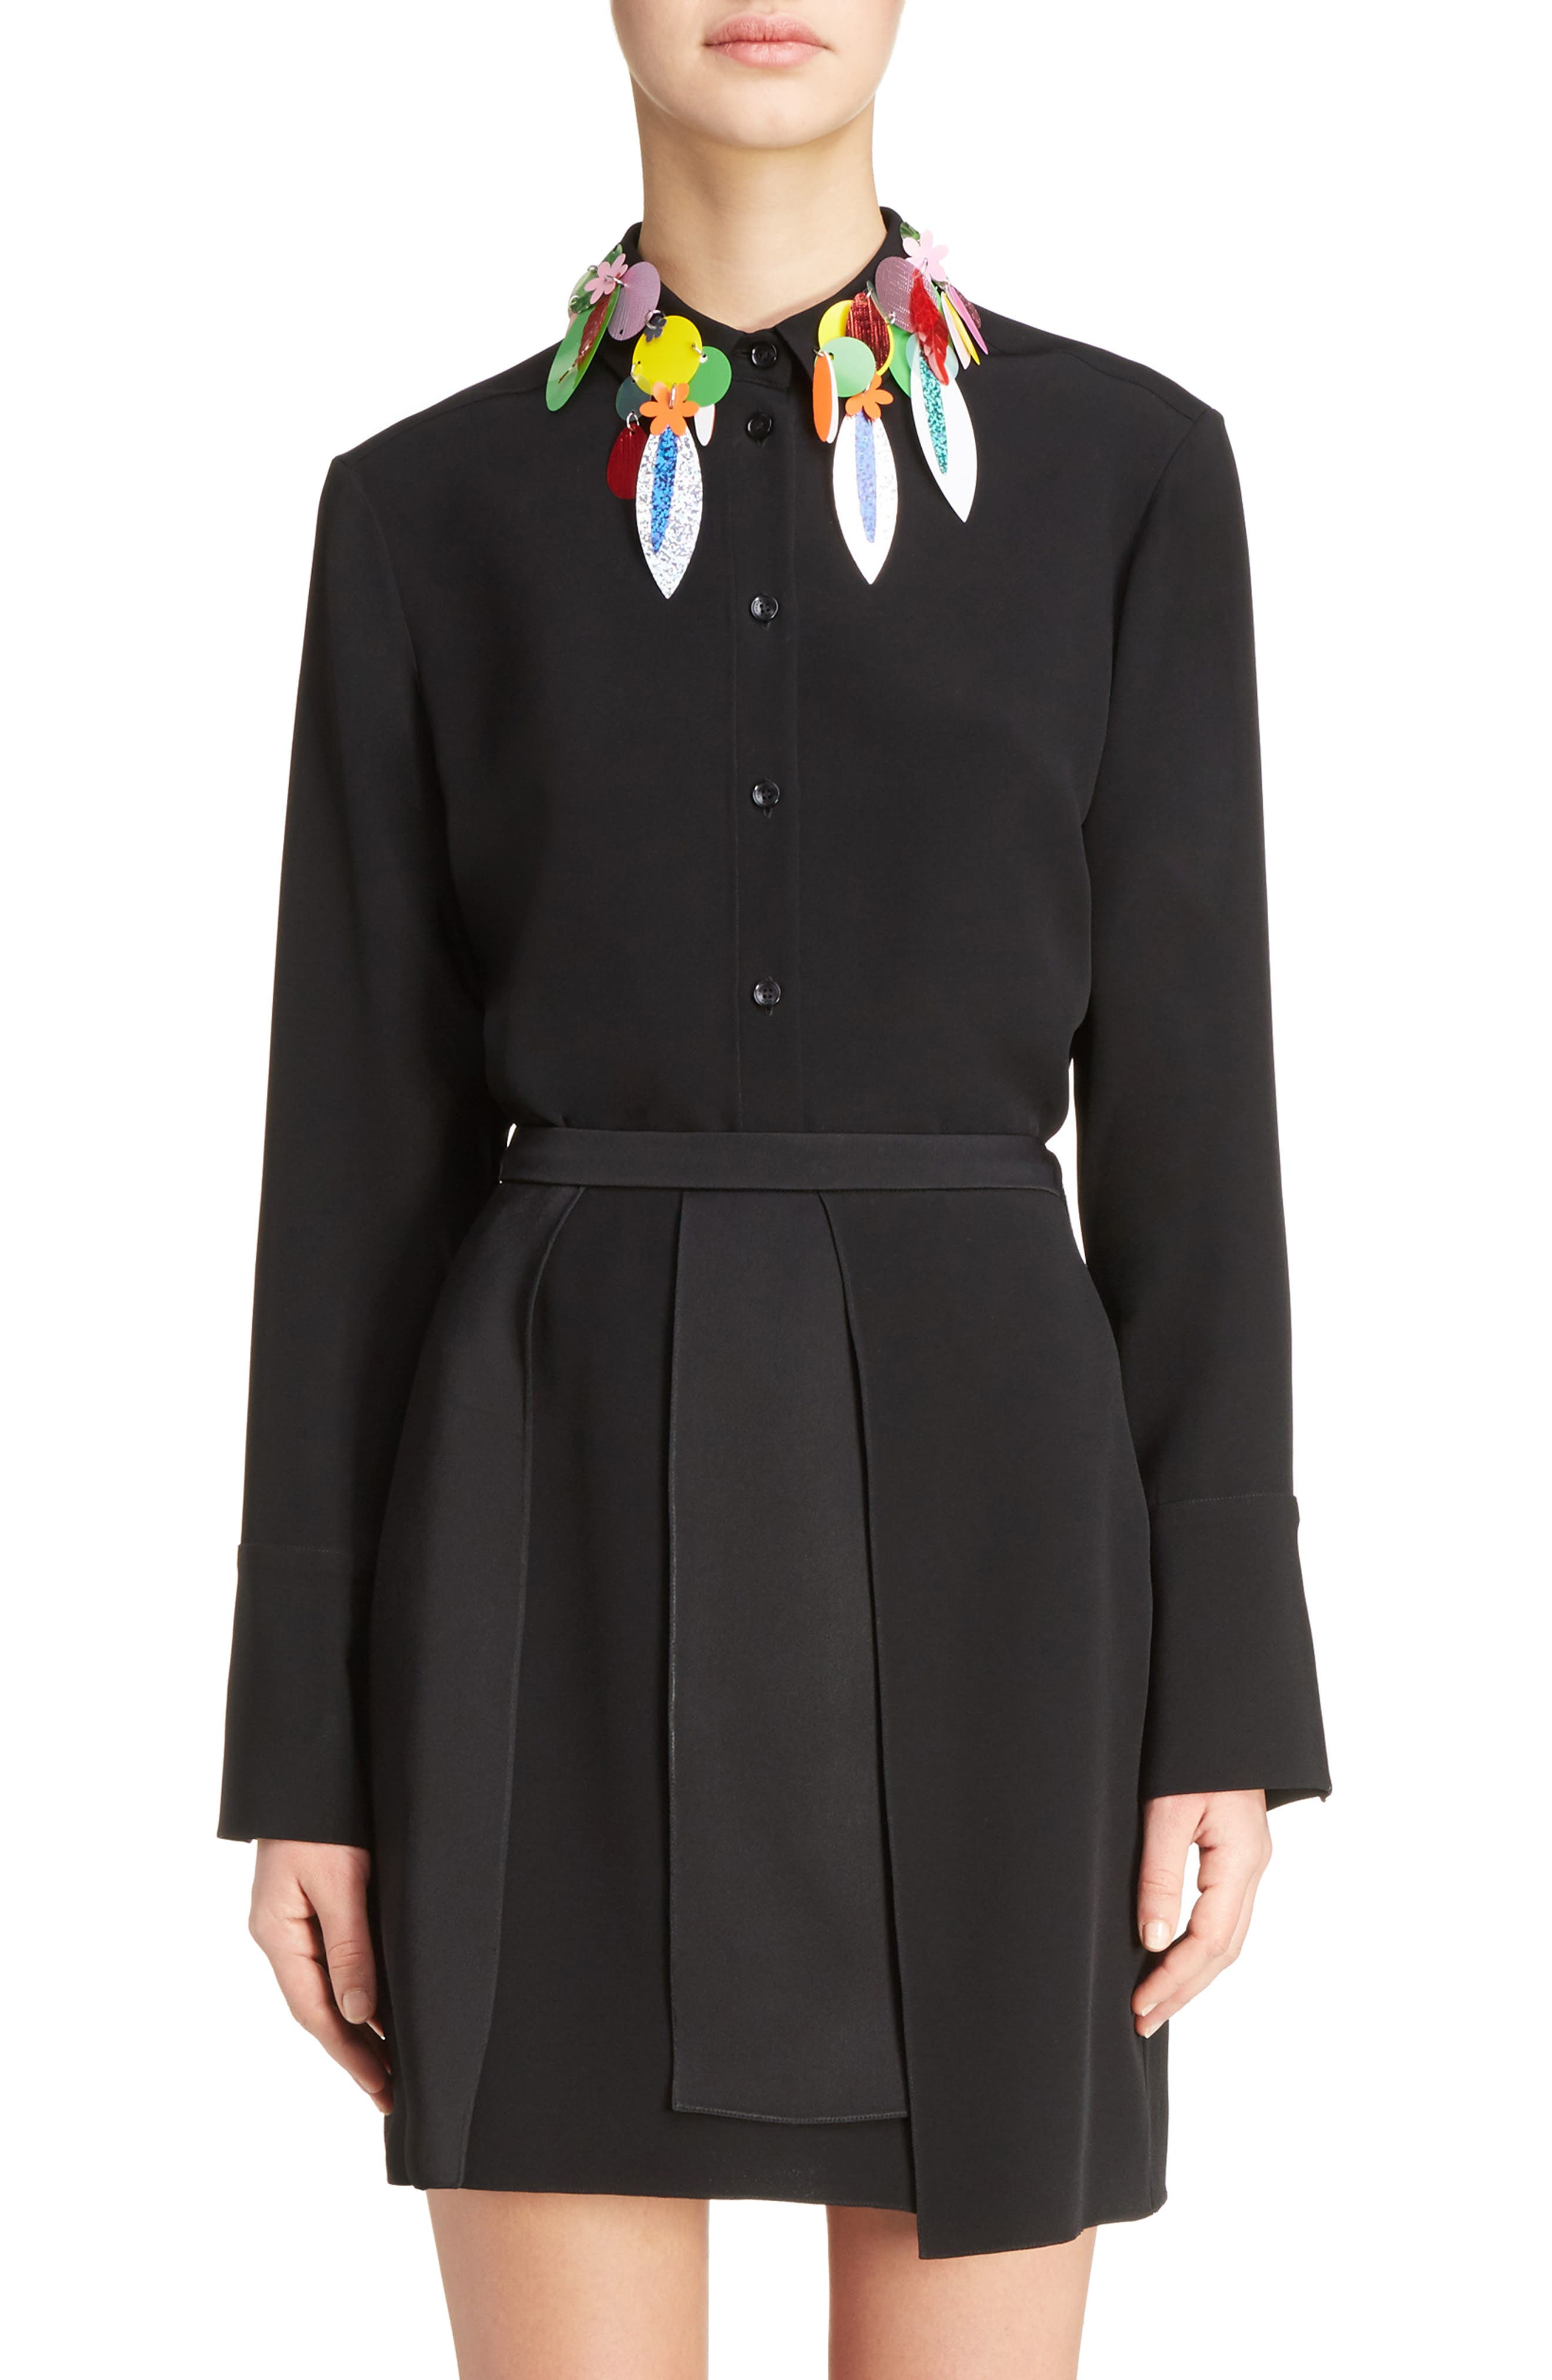 Christopher Kane Sequin Collar Blouse